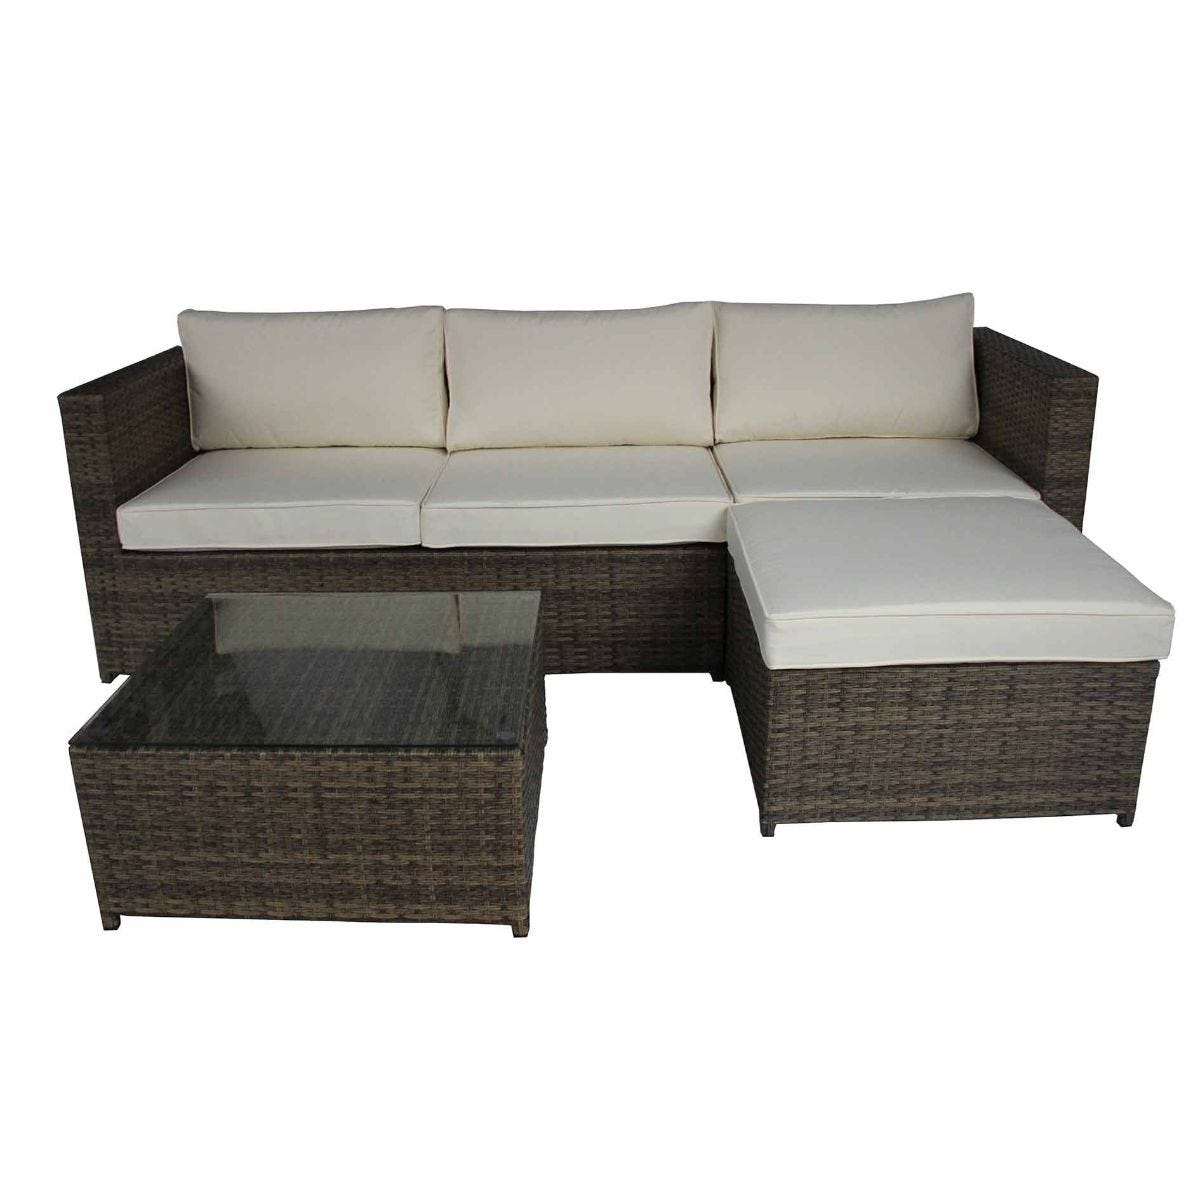 Charles Bentley Verona L-Shaped 3 Seater Rattan Garden Lounge Set, Brown